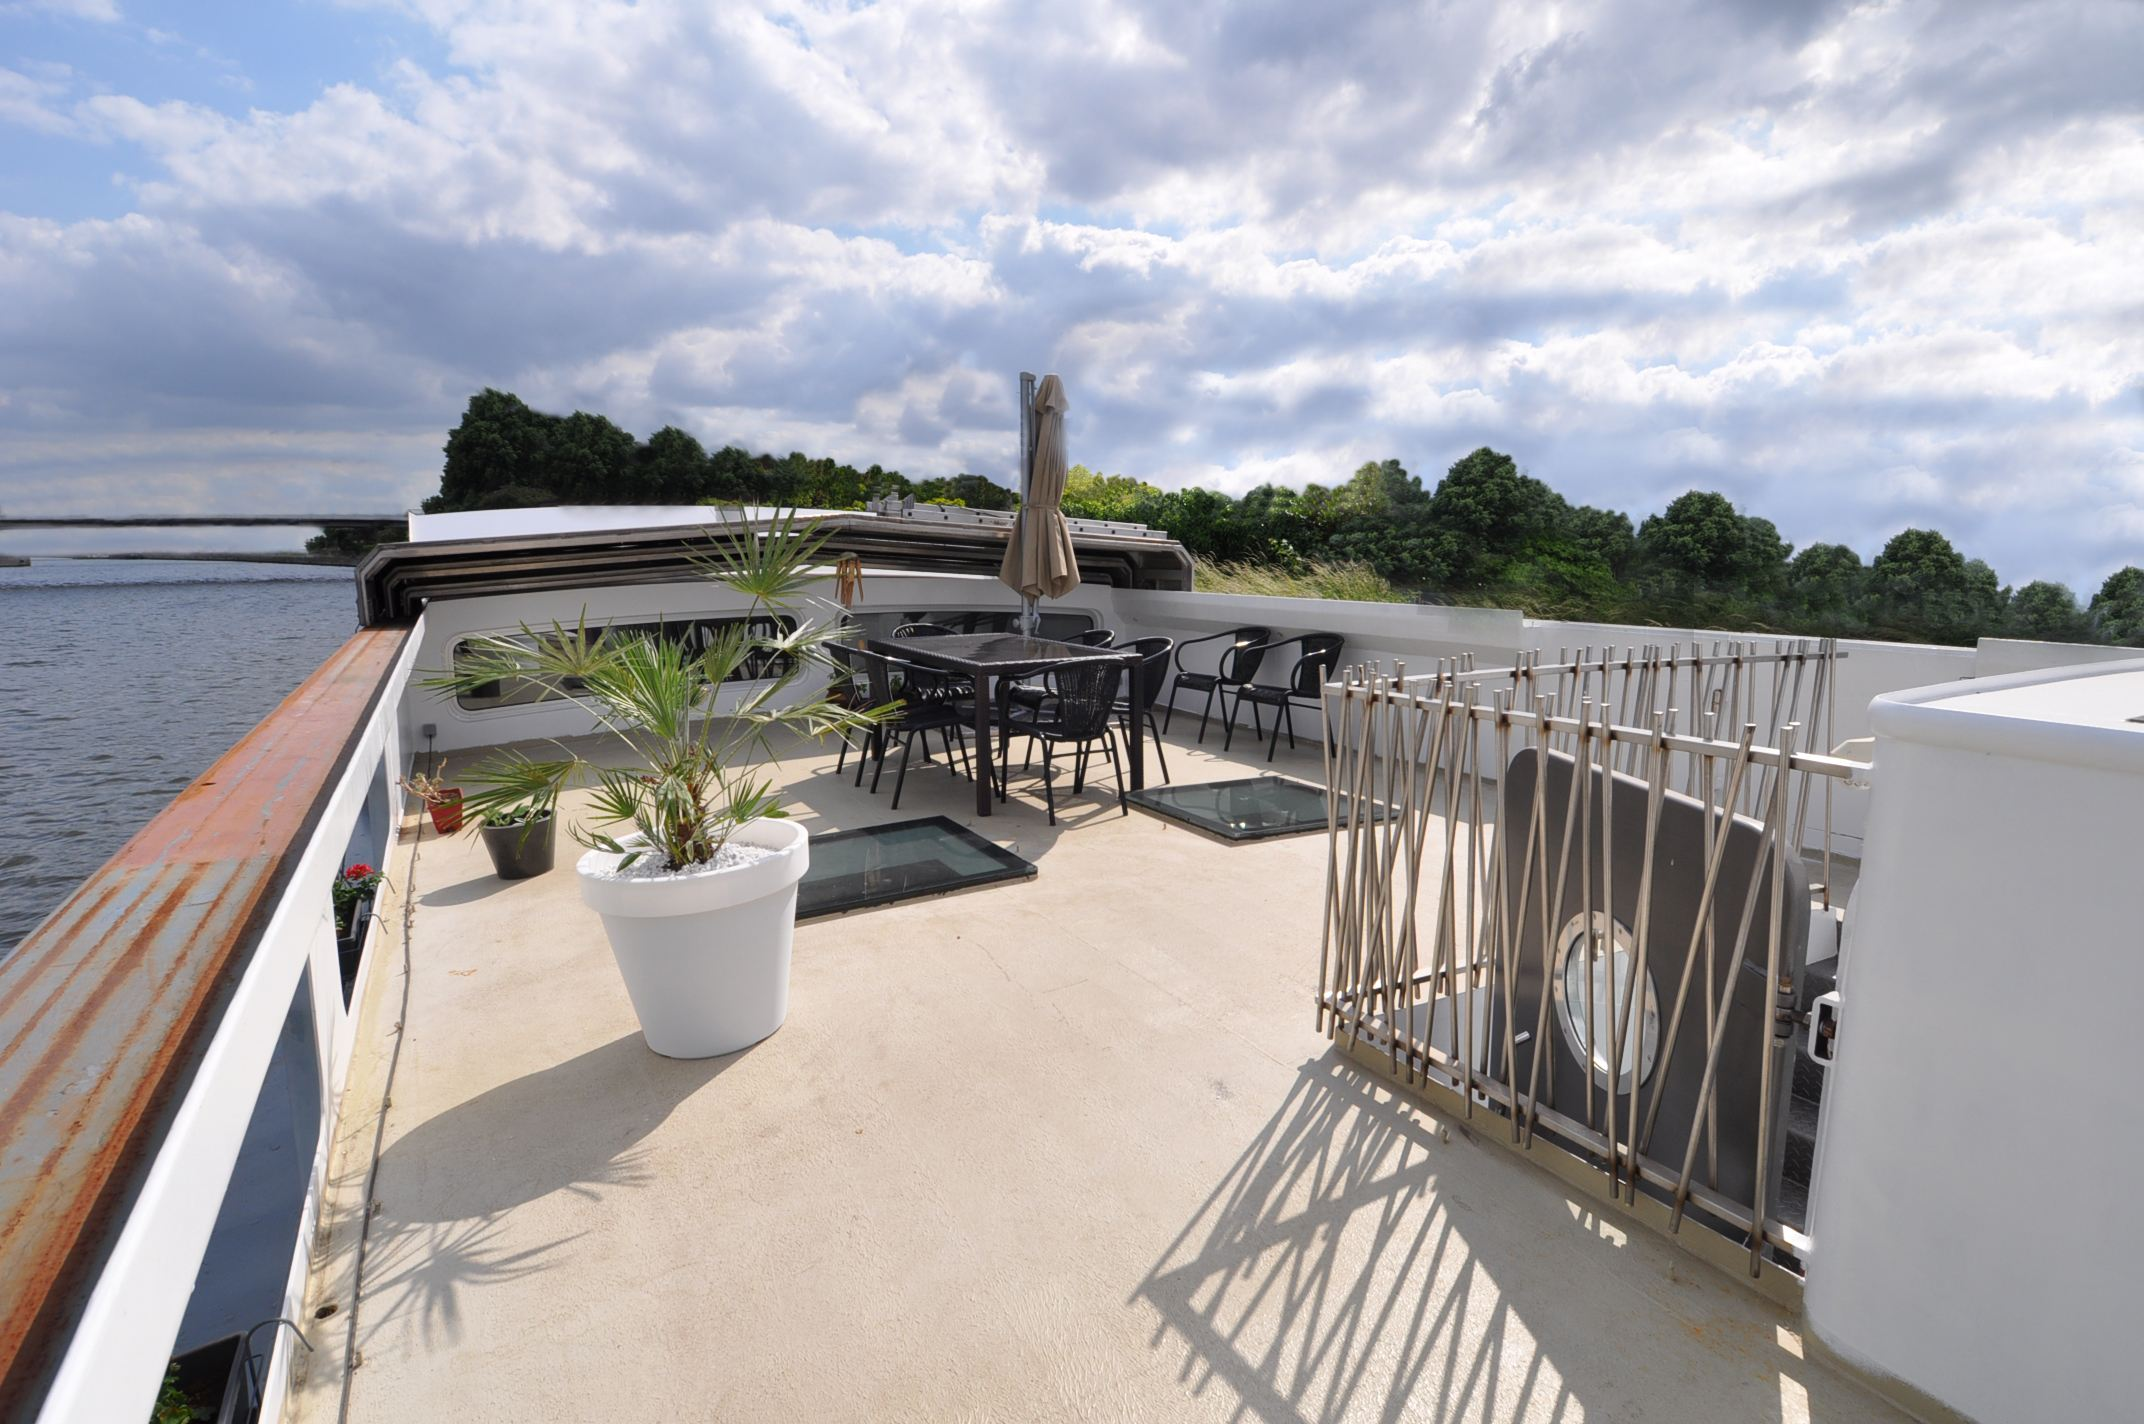 sales property at LILLE, Rare 235sqm Fully renovated Barge. 5 bedrooms